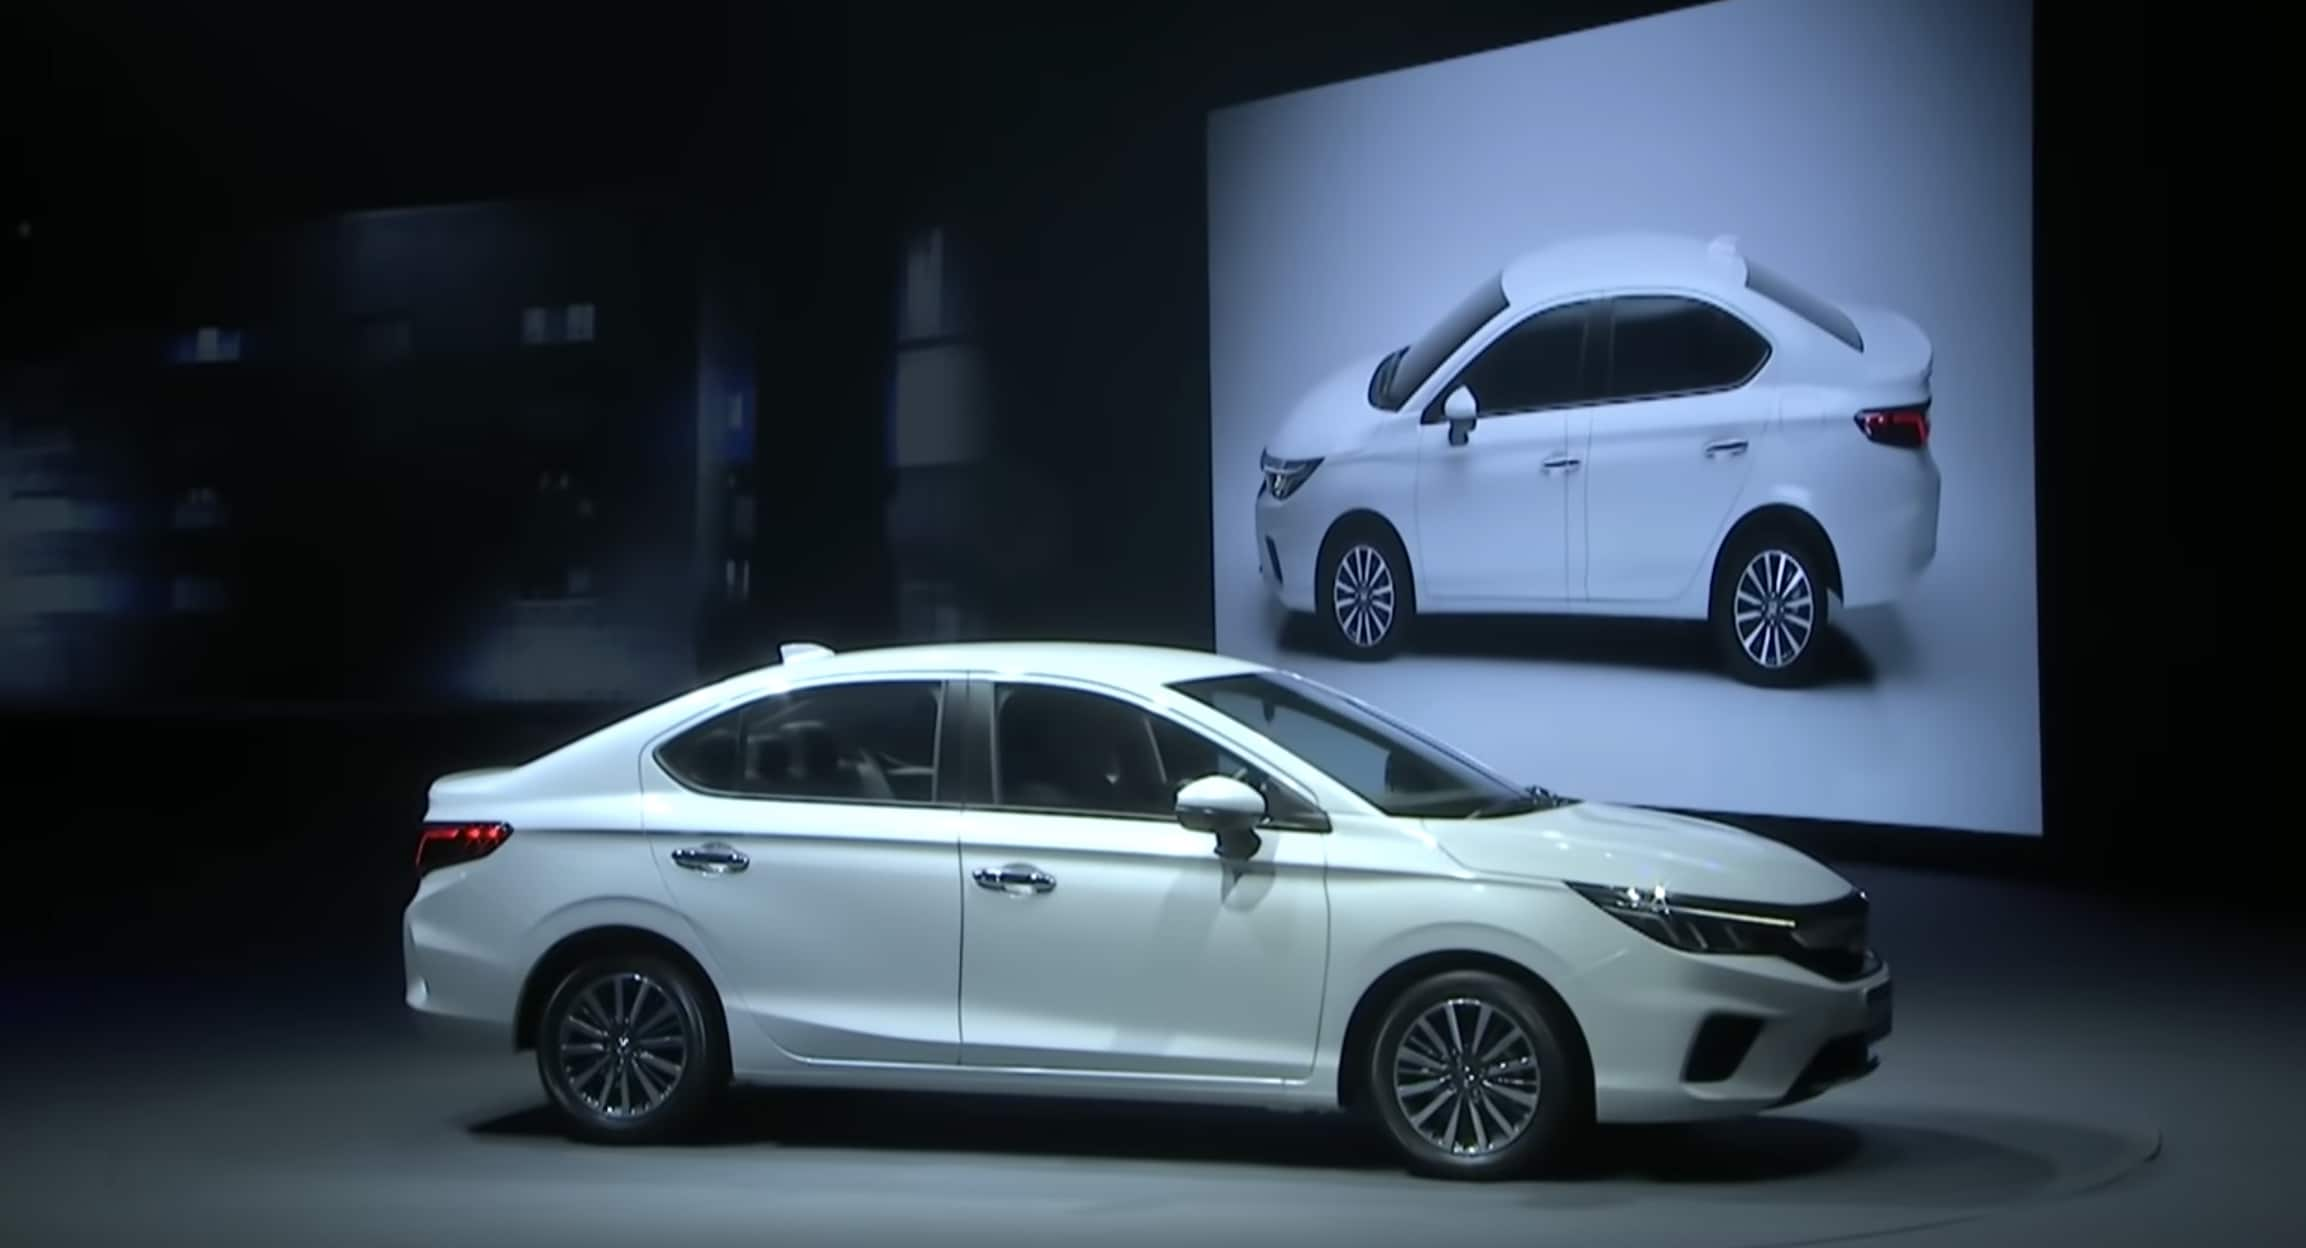 The 2020 City is expected to hit Indian shores by mid 2020.It will lock horns with Ciaz from Maruti Suzuki, Verna from Hyundai and Volkswagen's Vento. Photo courtesy: Youtube/Honda Thailand